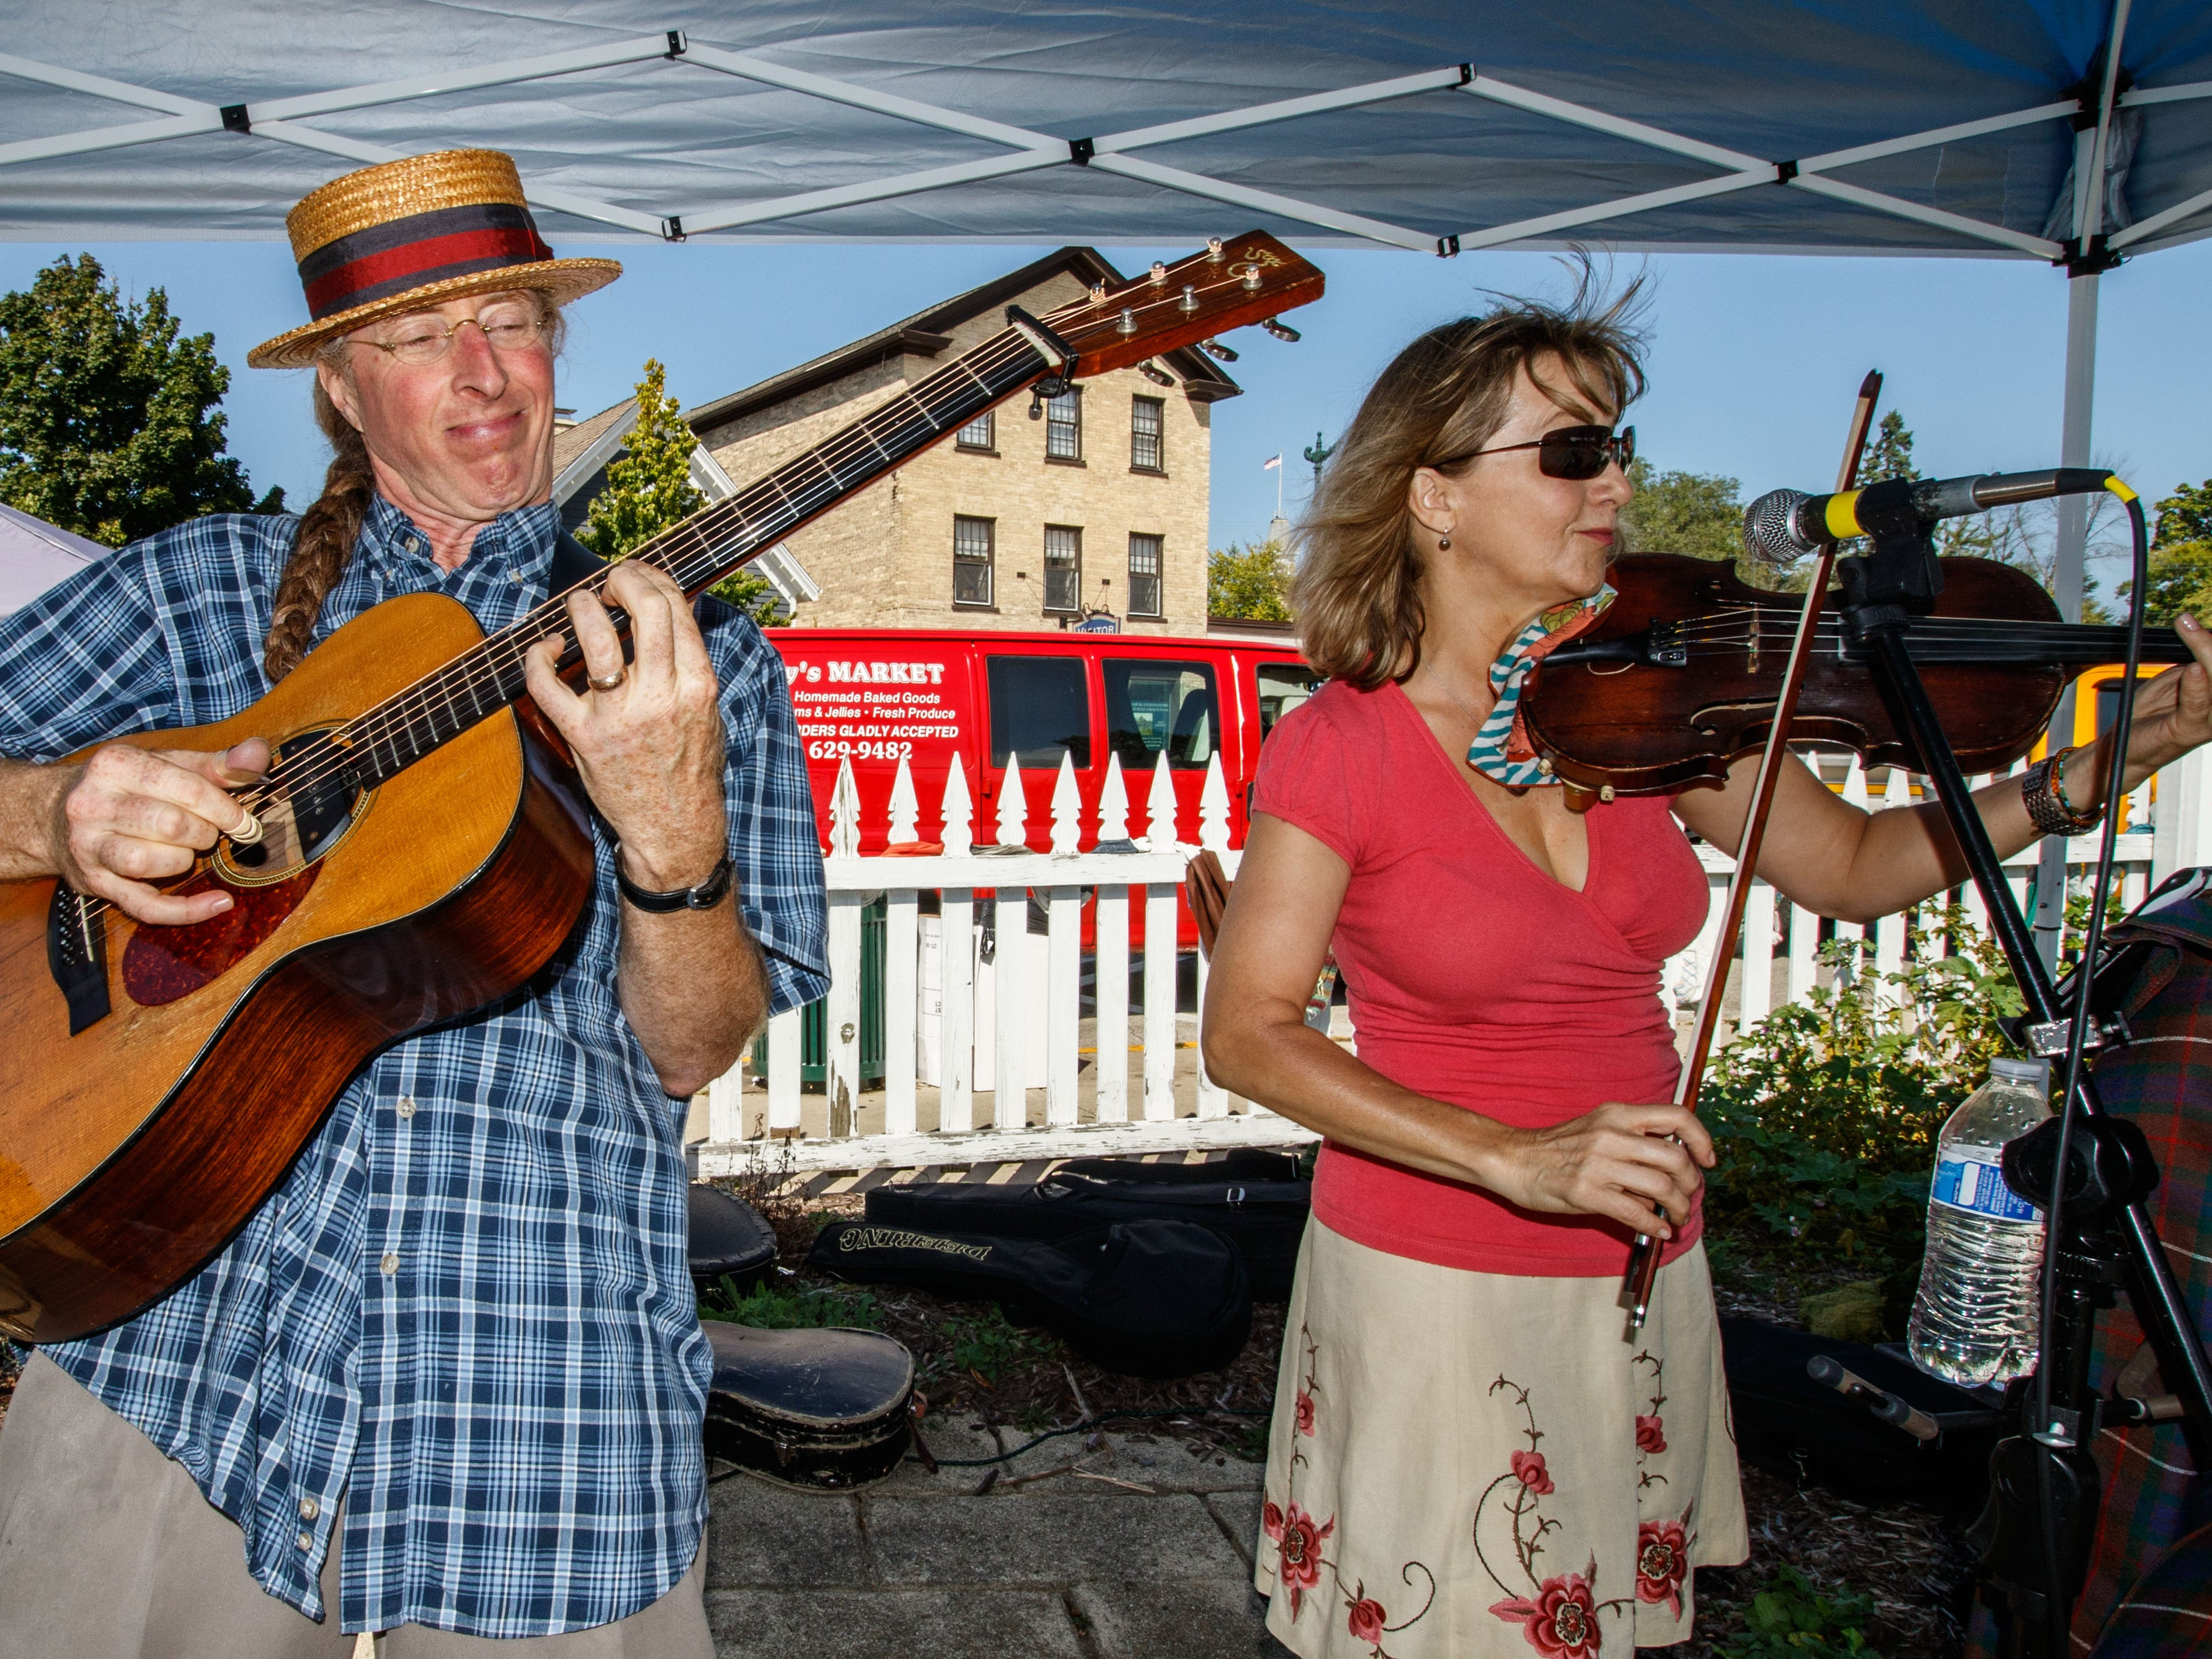 John Nicholson and Susan Nicholson of the band Frogwater entertain visitors during the 46th annual Wine & Harvest Festival in downtown Cedarburg on Sunday, Sept. 16, 2018. The free two-day family-oriented arts and crafts event features homegrown produce, artisan foods, award-winning wines of Cedar Creek Winery, live music, children's activities and much more.